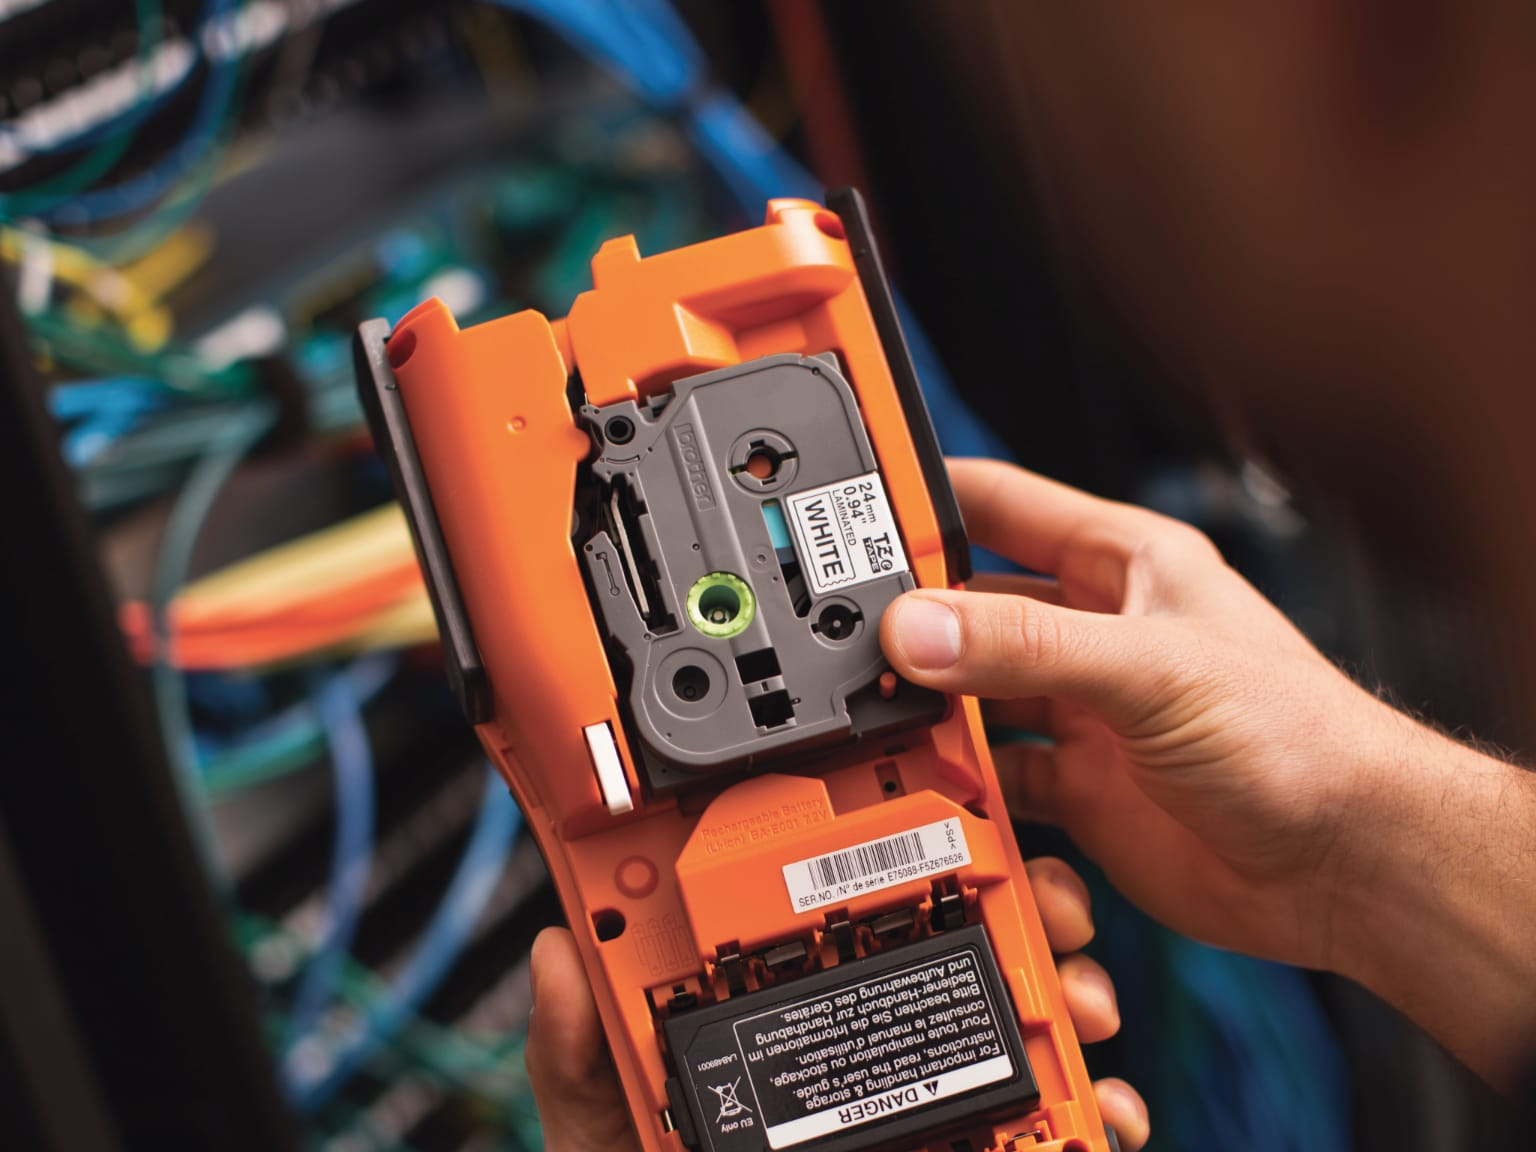 Electrician installing tape into a PT-E550 label printer with electrical cabling in the background